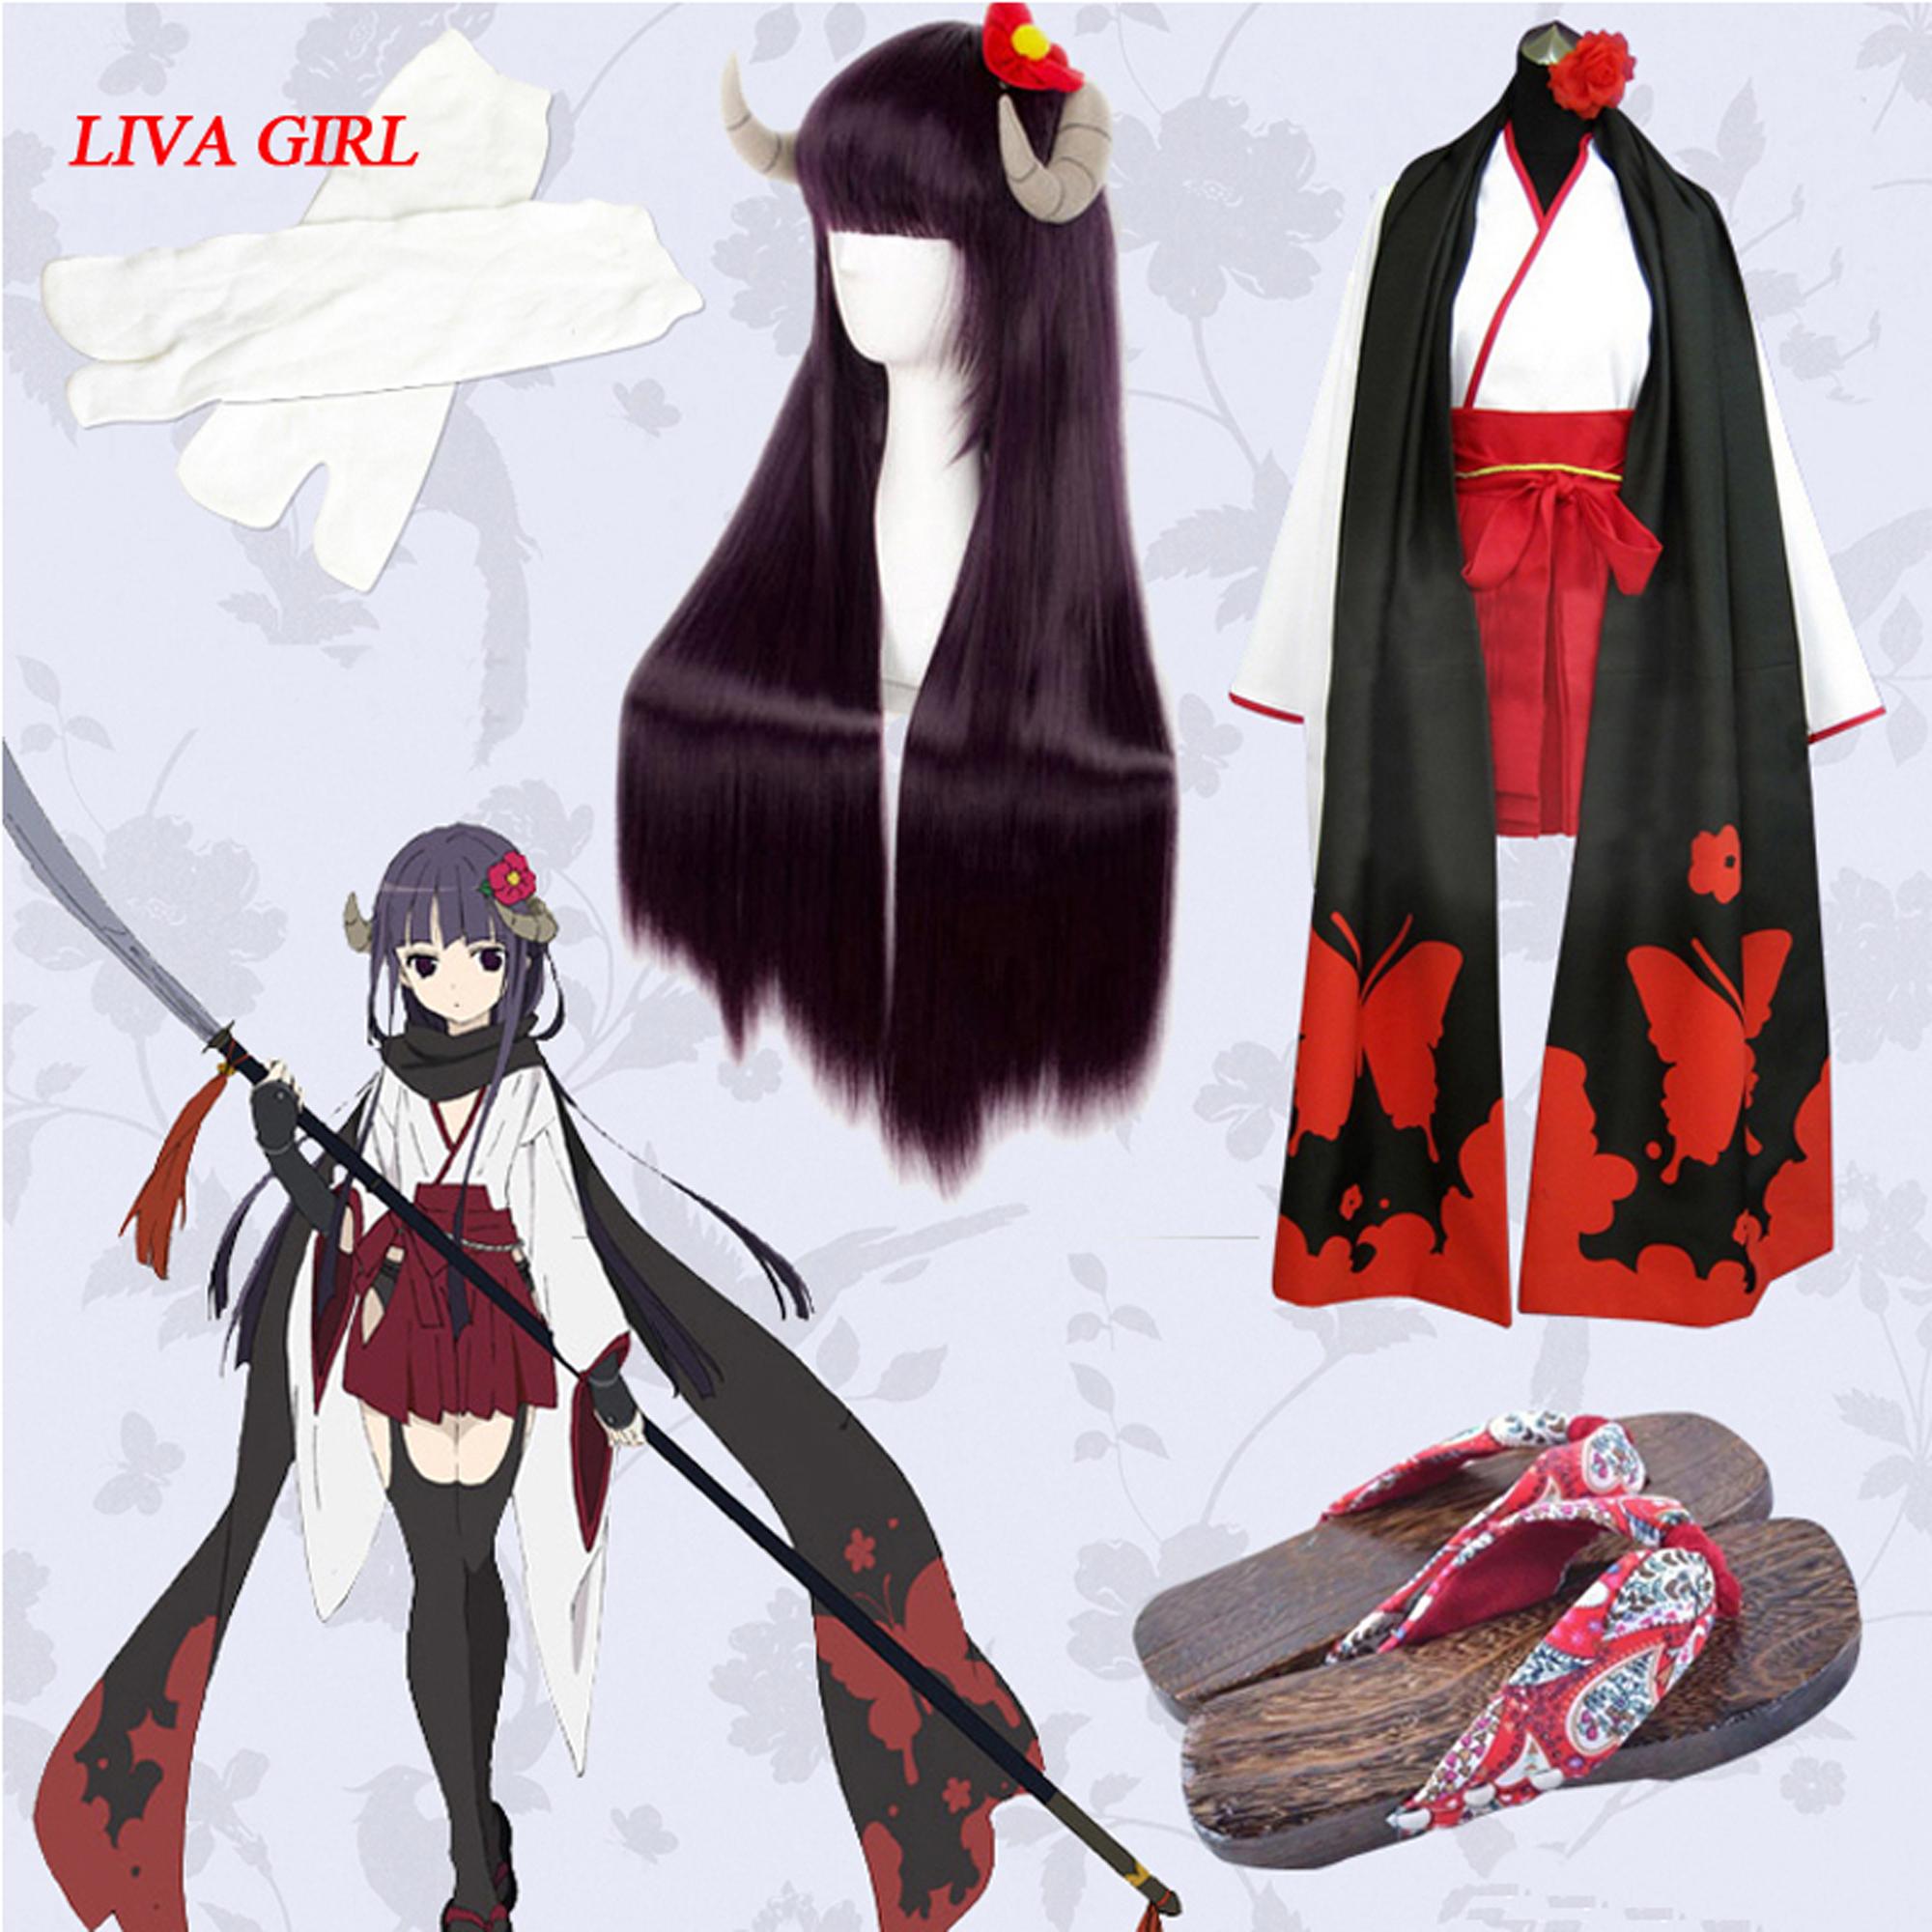 LIVA GIRL Hot Anime Inu X Boku SS Shirakiin Ririchiyo Cosplay Costume Wig Full Set Free Shipping